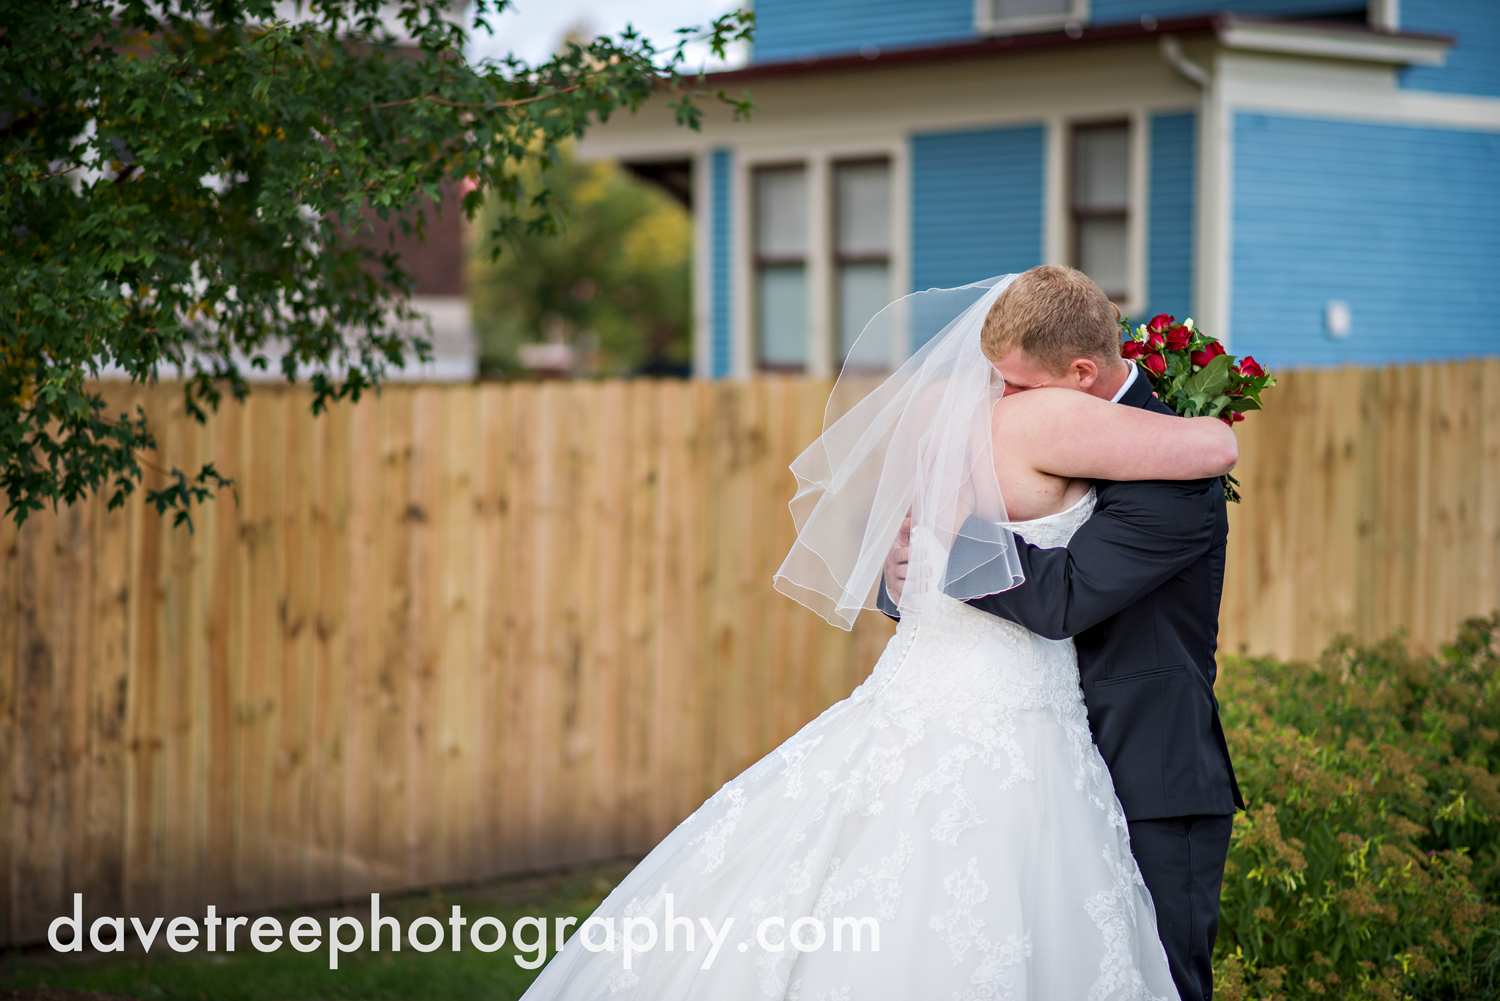 holland_wedding_photographer_72.jpg